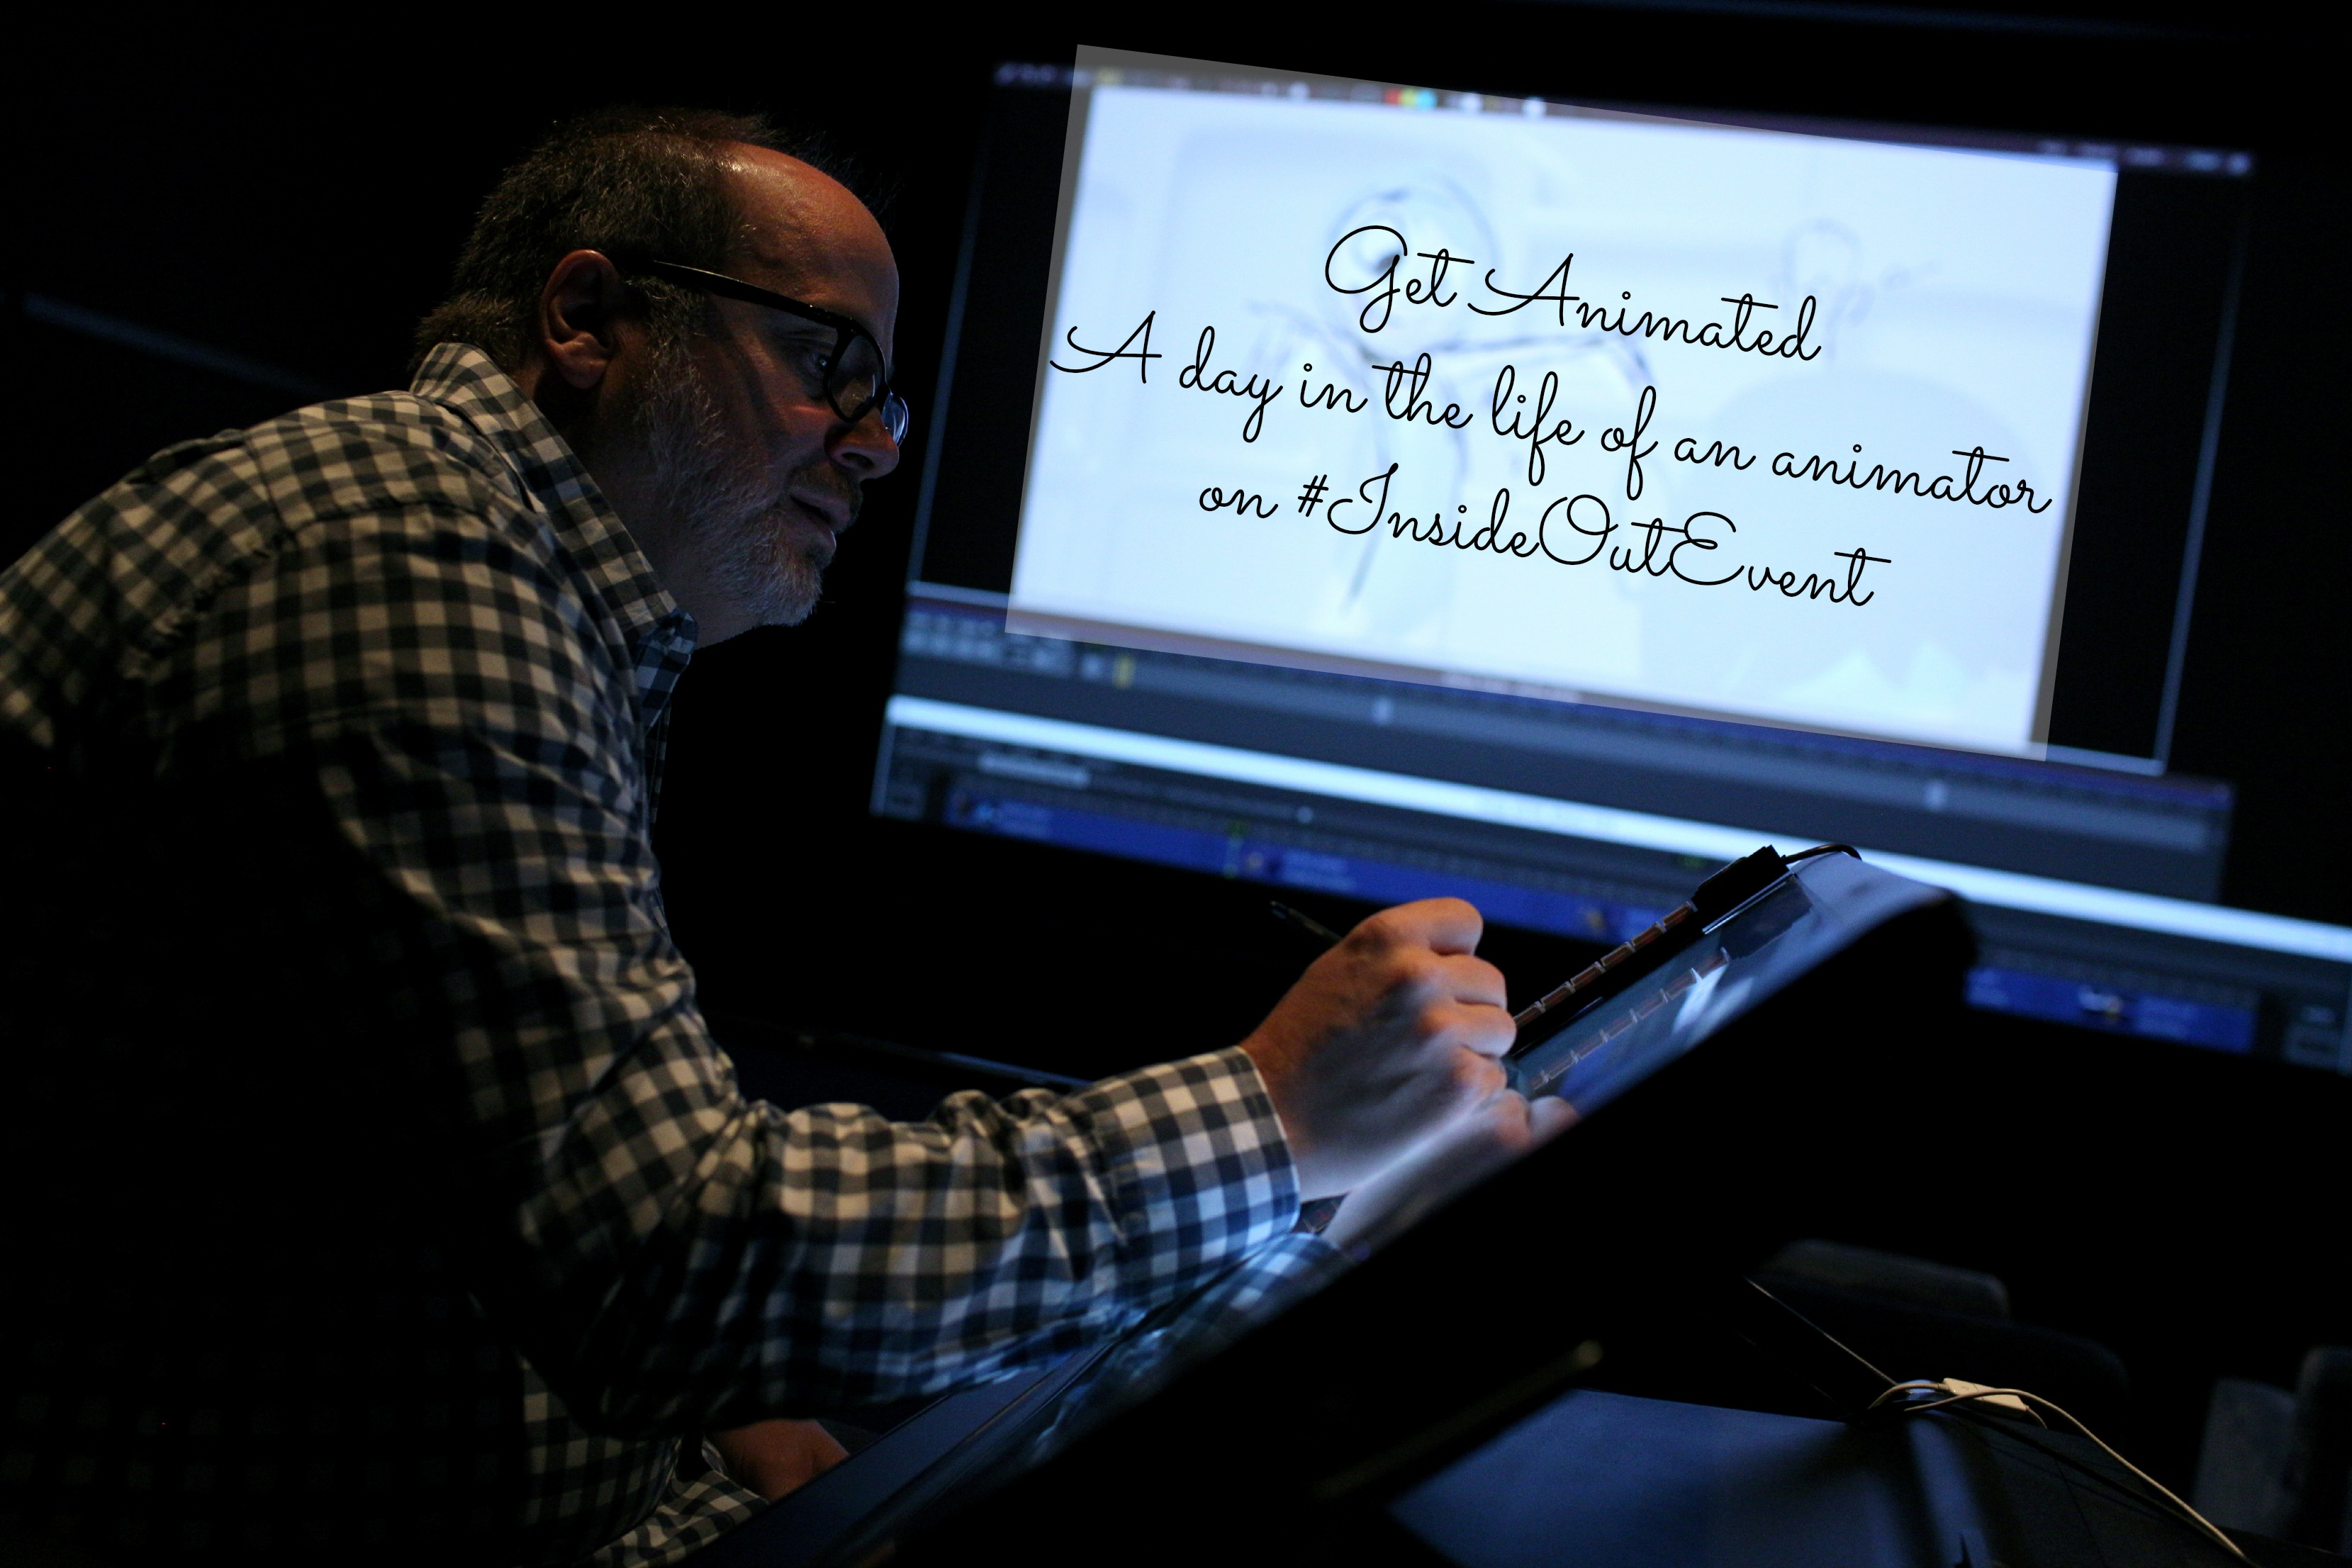 Get Animated - A day in the Life of an Animator on #InsideOutEvent